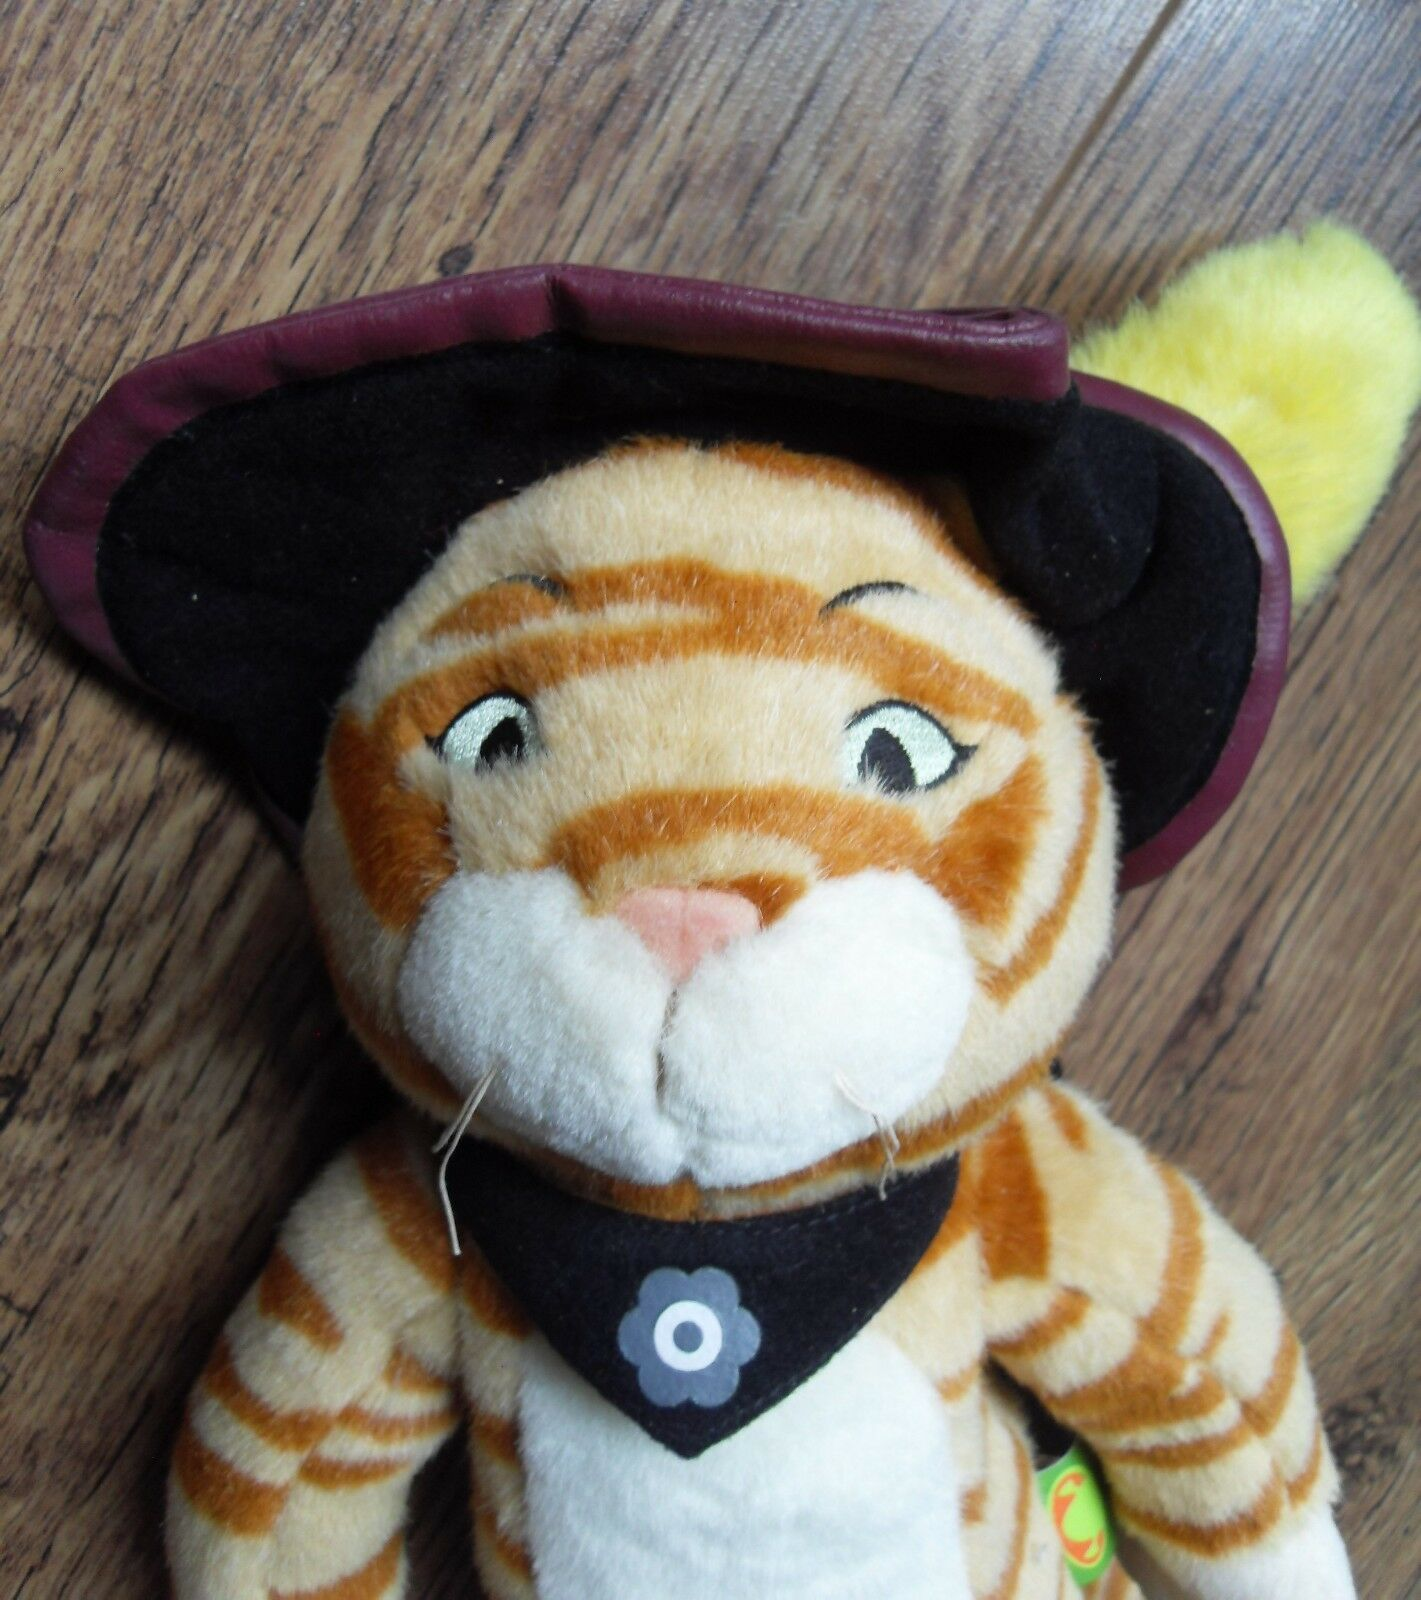 Shrek 2 PUSS IN BOOTS BOOTS BOOTS Bendable Plush Cat 2003 Bev Hills Teddy Co 16  9d989a